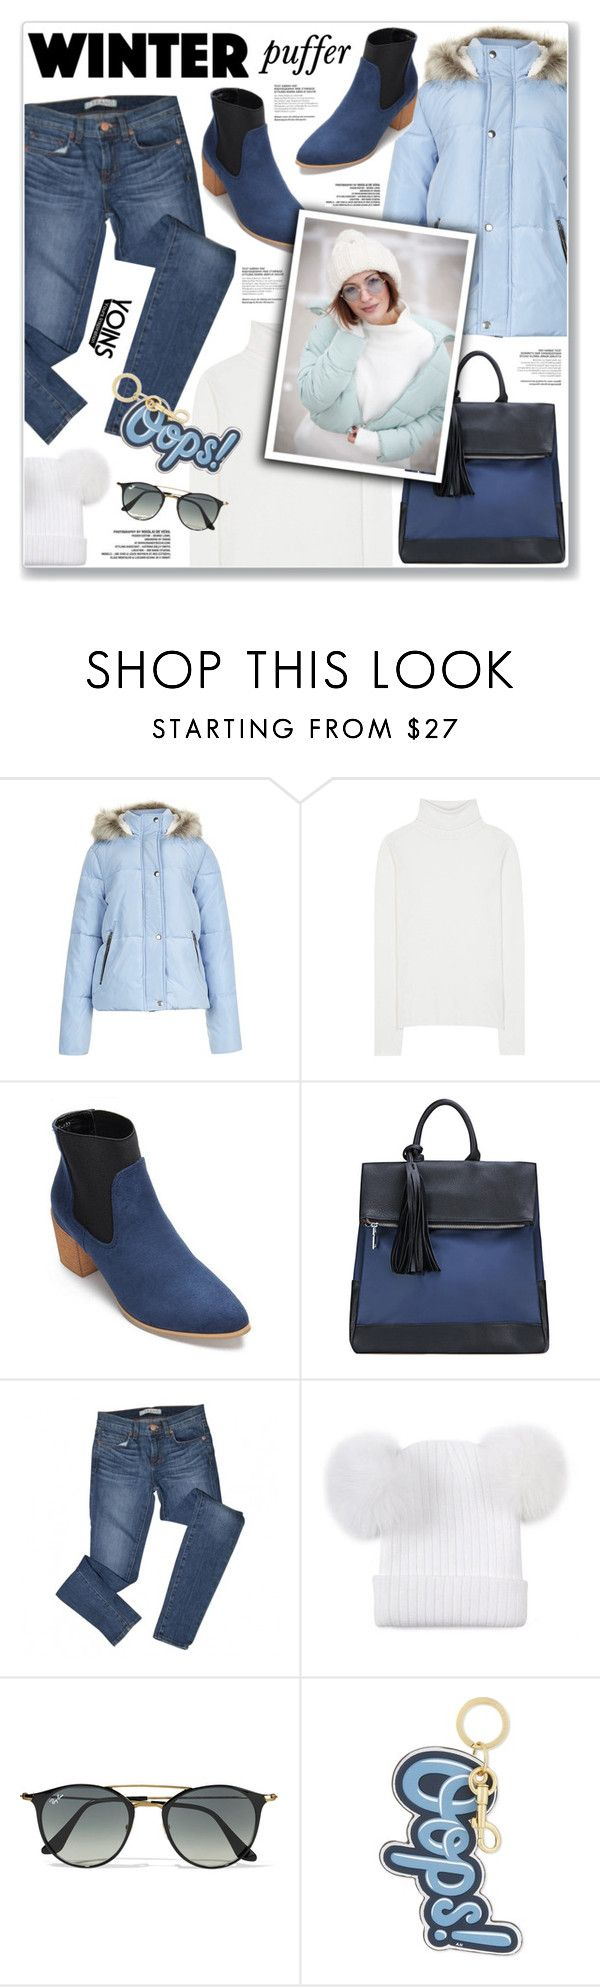 """LOVE YOINS"" by nanawidia ❤ liked on Polyvore featuring New Look, Chloé, J Brand, Ray-Ban and Anya Hindmarch"